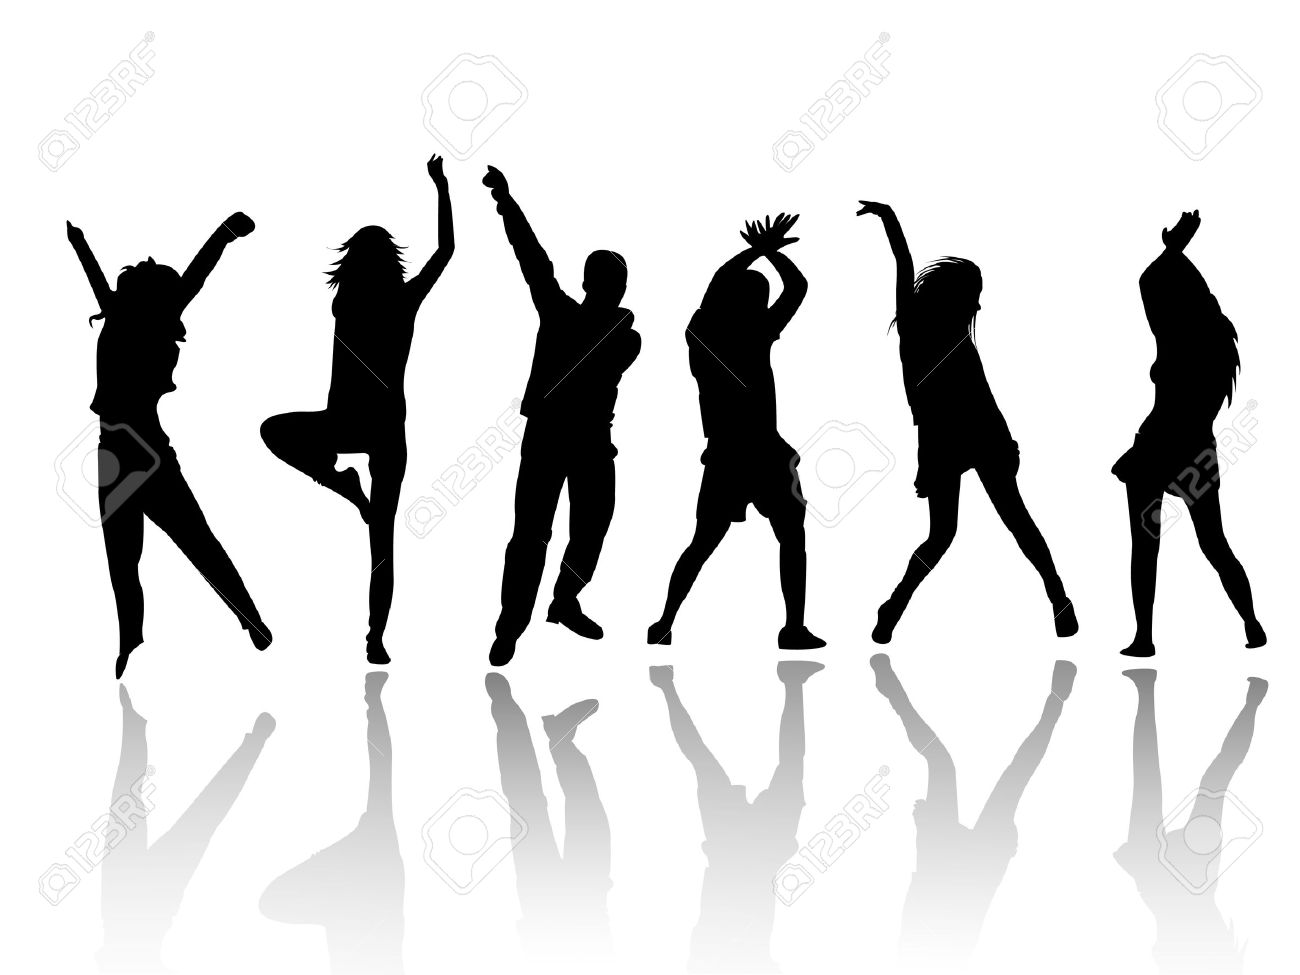 Party People Silhouette Vector Free Silhouette People Party Dance